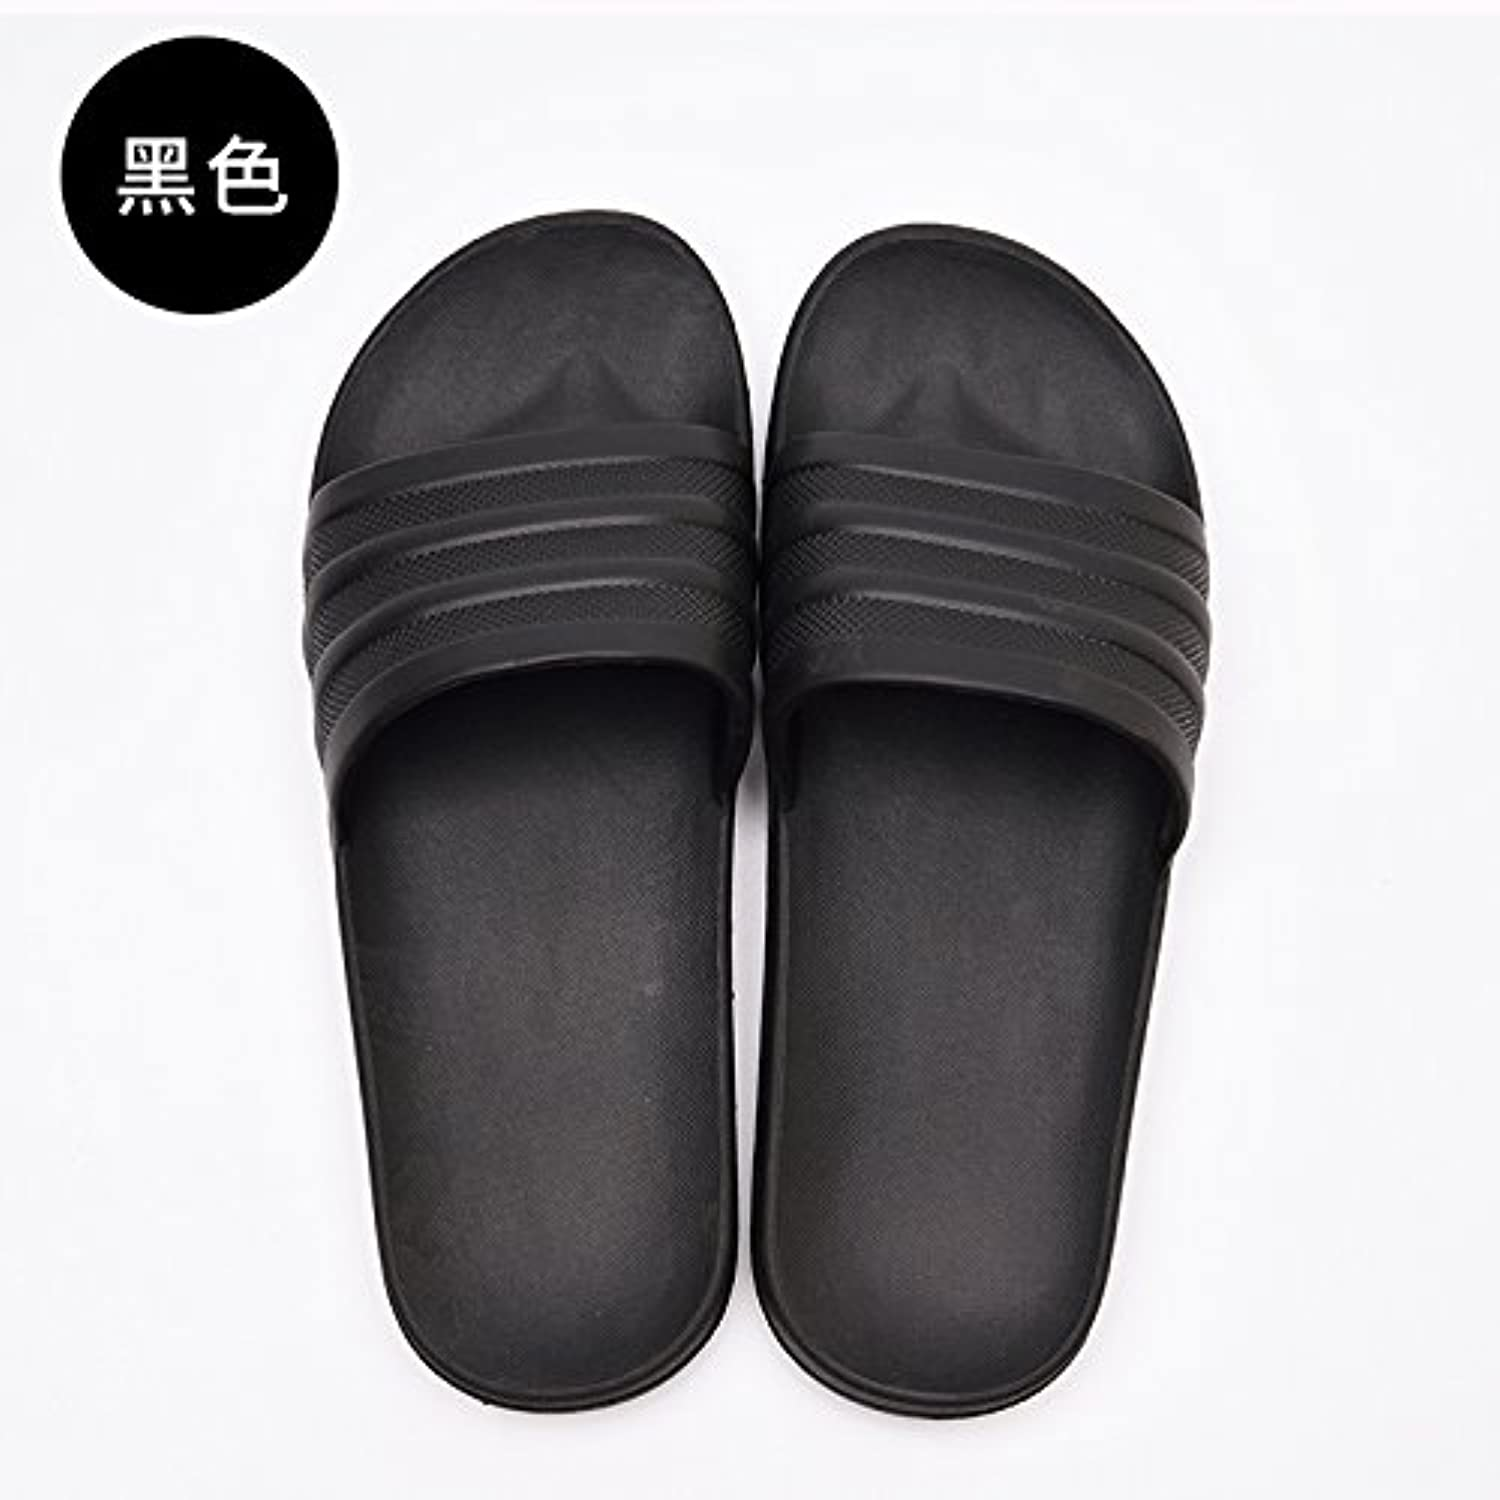 RUGBI-UE Summer home slippers,bathing,antiskid,cold slippers,couples indoor and slippers... outdoor wear men's cool slippers... and  Parent 7a3b4d